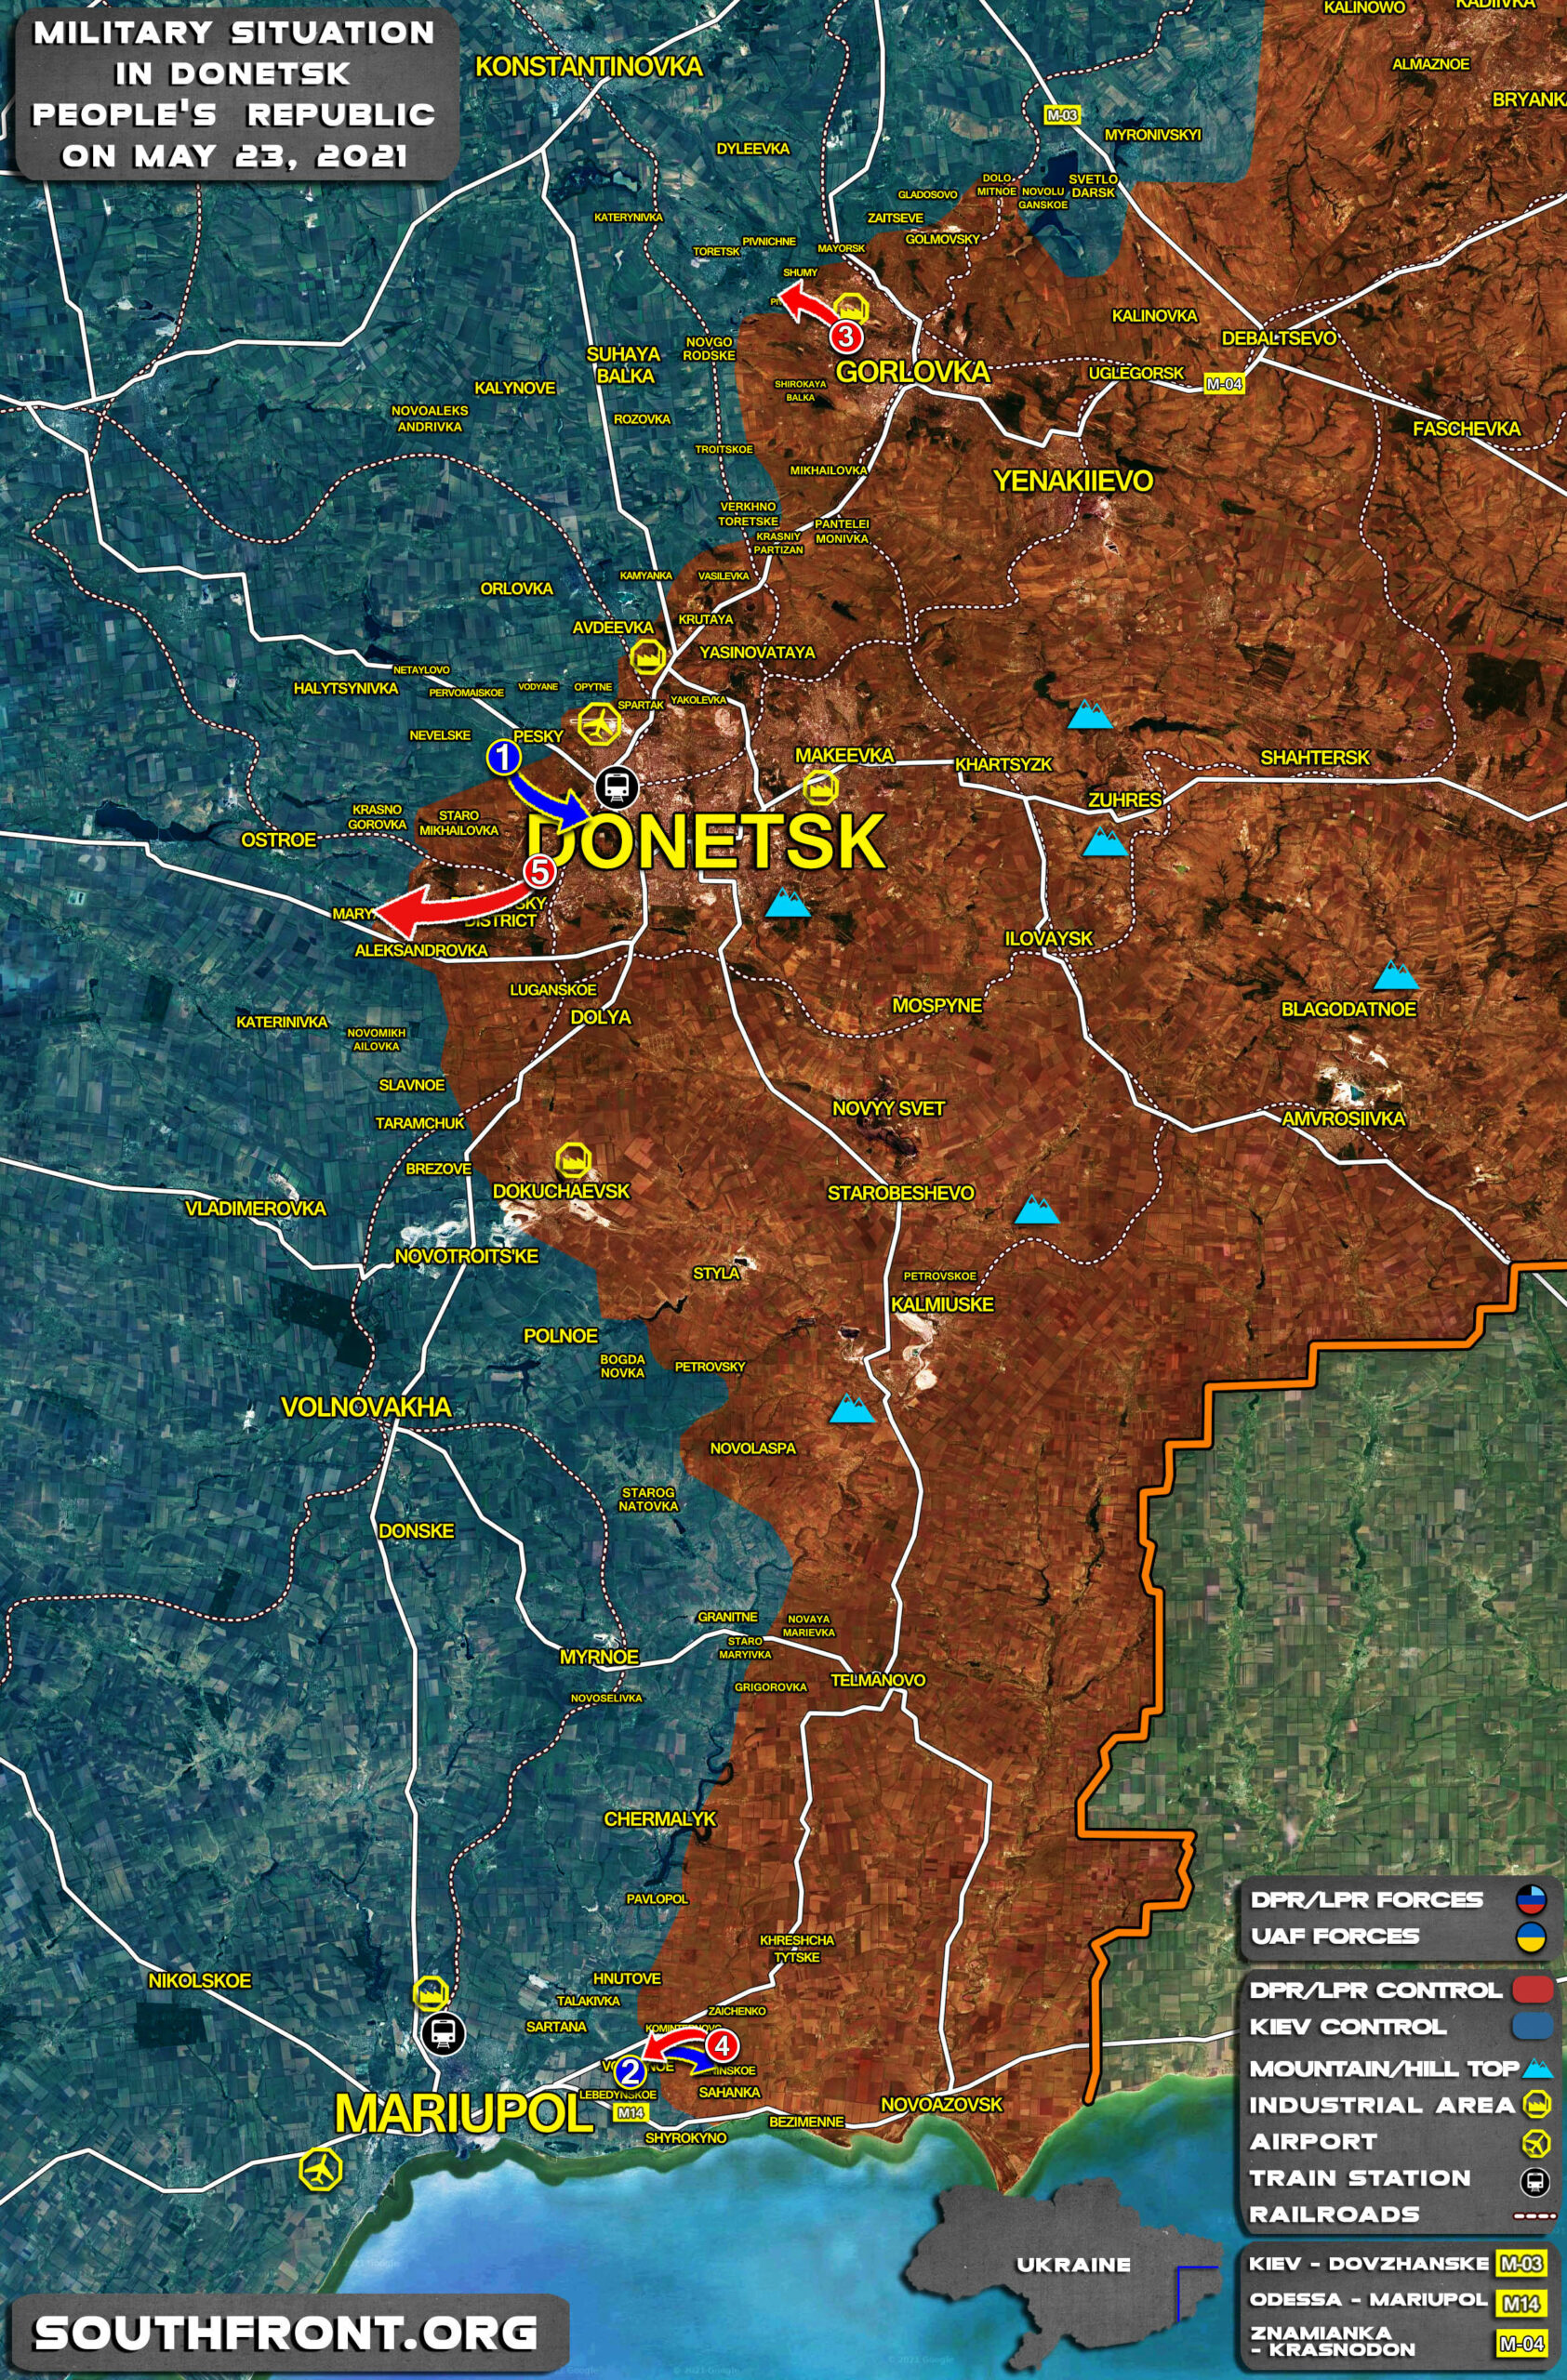 Military Situation In Donetsk People's Republic On May 23, 2021 (Map Update)